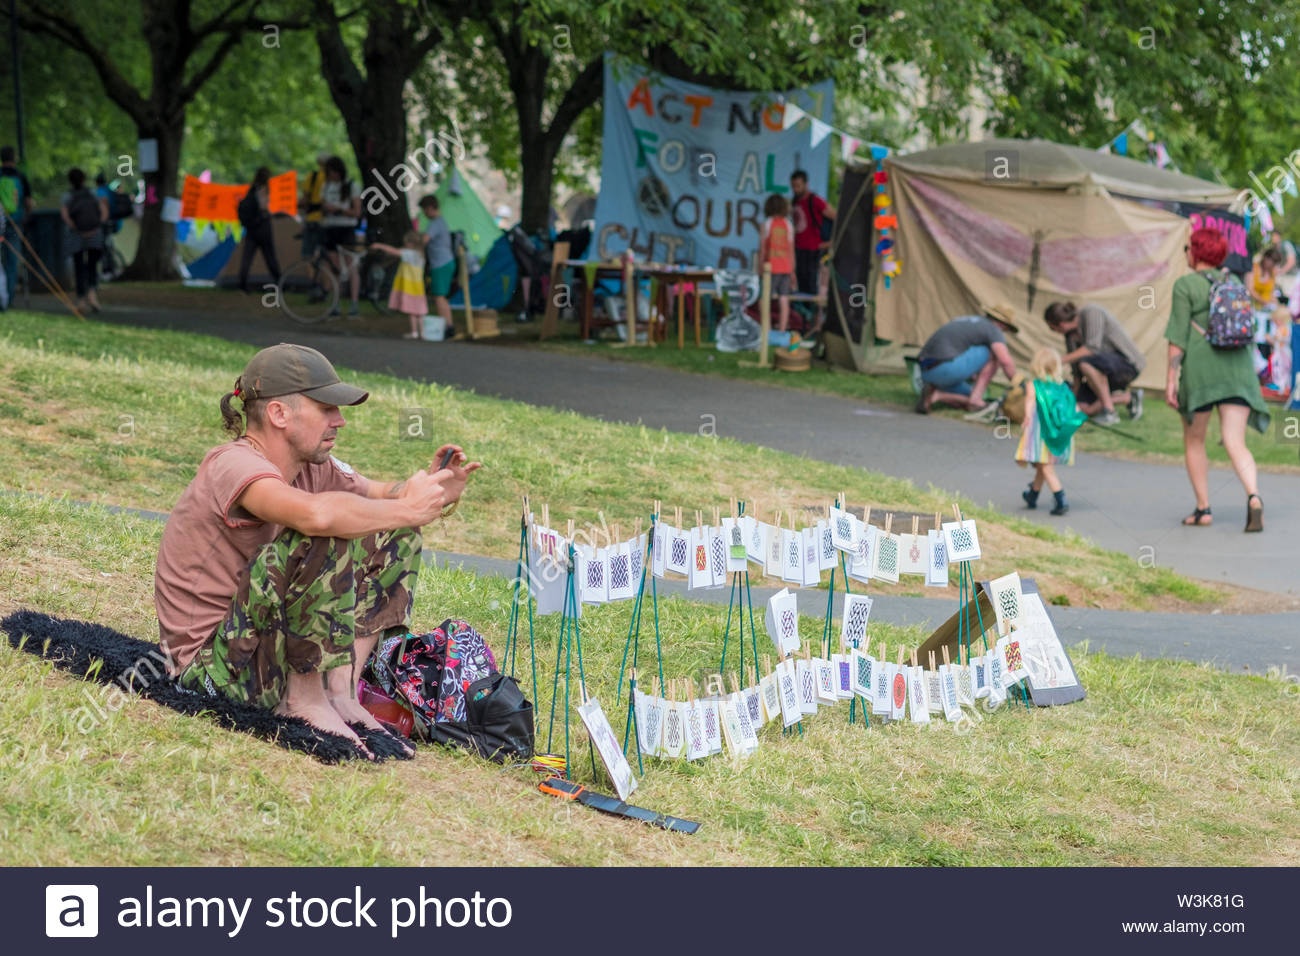 Bristol, United Kingdom - 16 July 2019: Extinction Rebellion member sells his wares in Castle Park as the group take over Bristol city centre for a second day as part of their Summer Uprising campaign drawing attention to environmental issues. Credit: Andy Parker/Alamy Live News - Stock Image